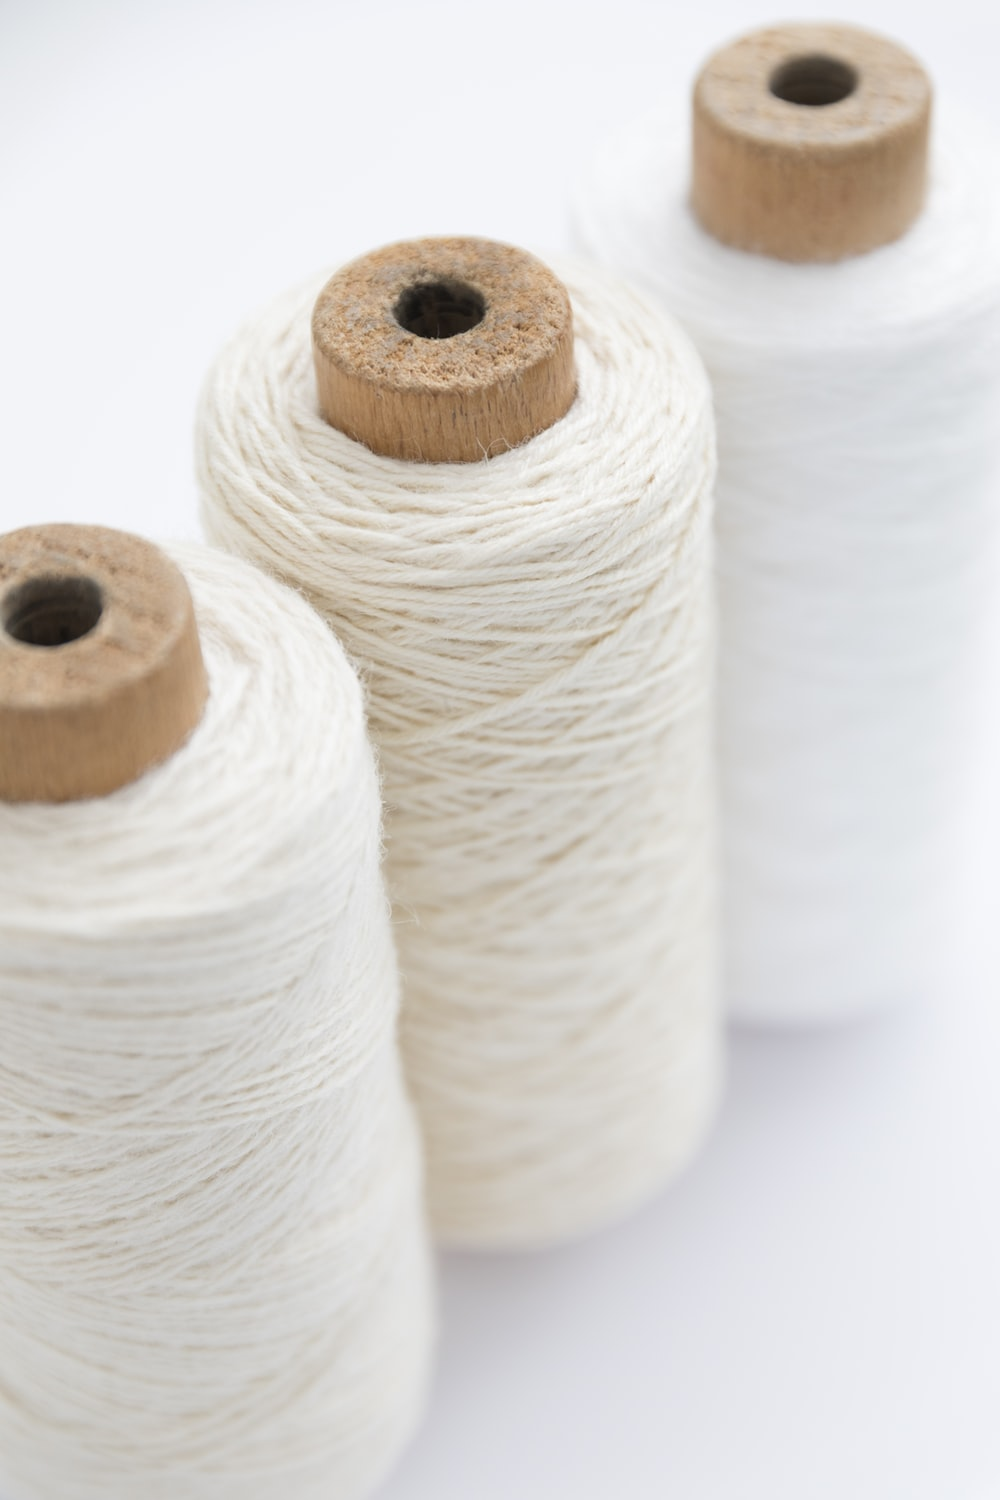 yarn spool pictures download free images on unsplash